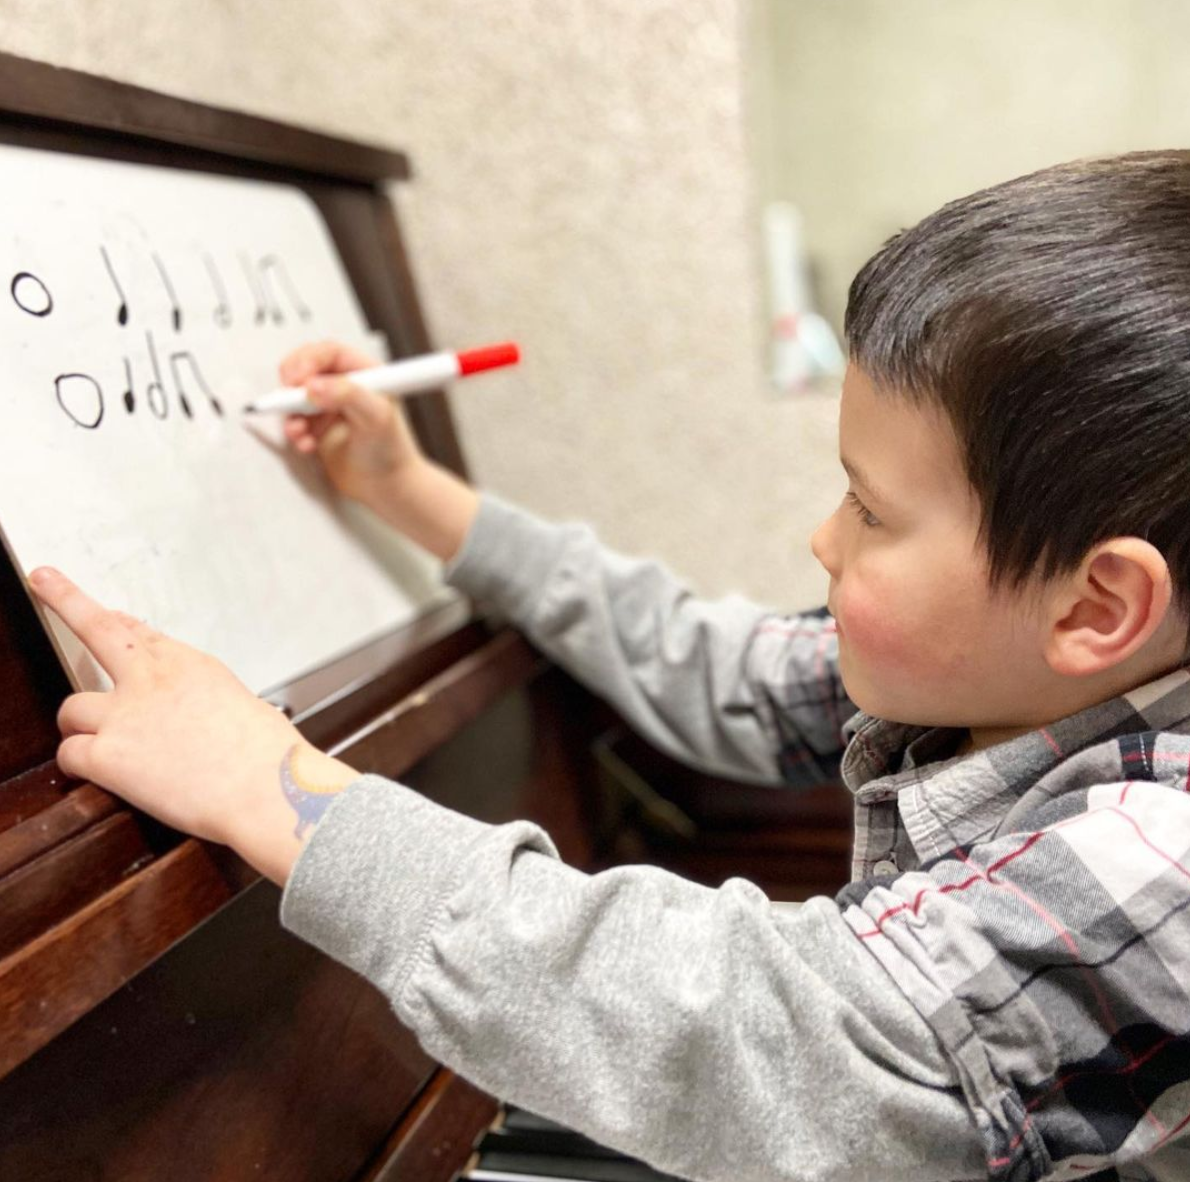 A young boy uses a marker to draw music notes on a sheet of paper while sitting at a piano